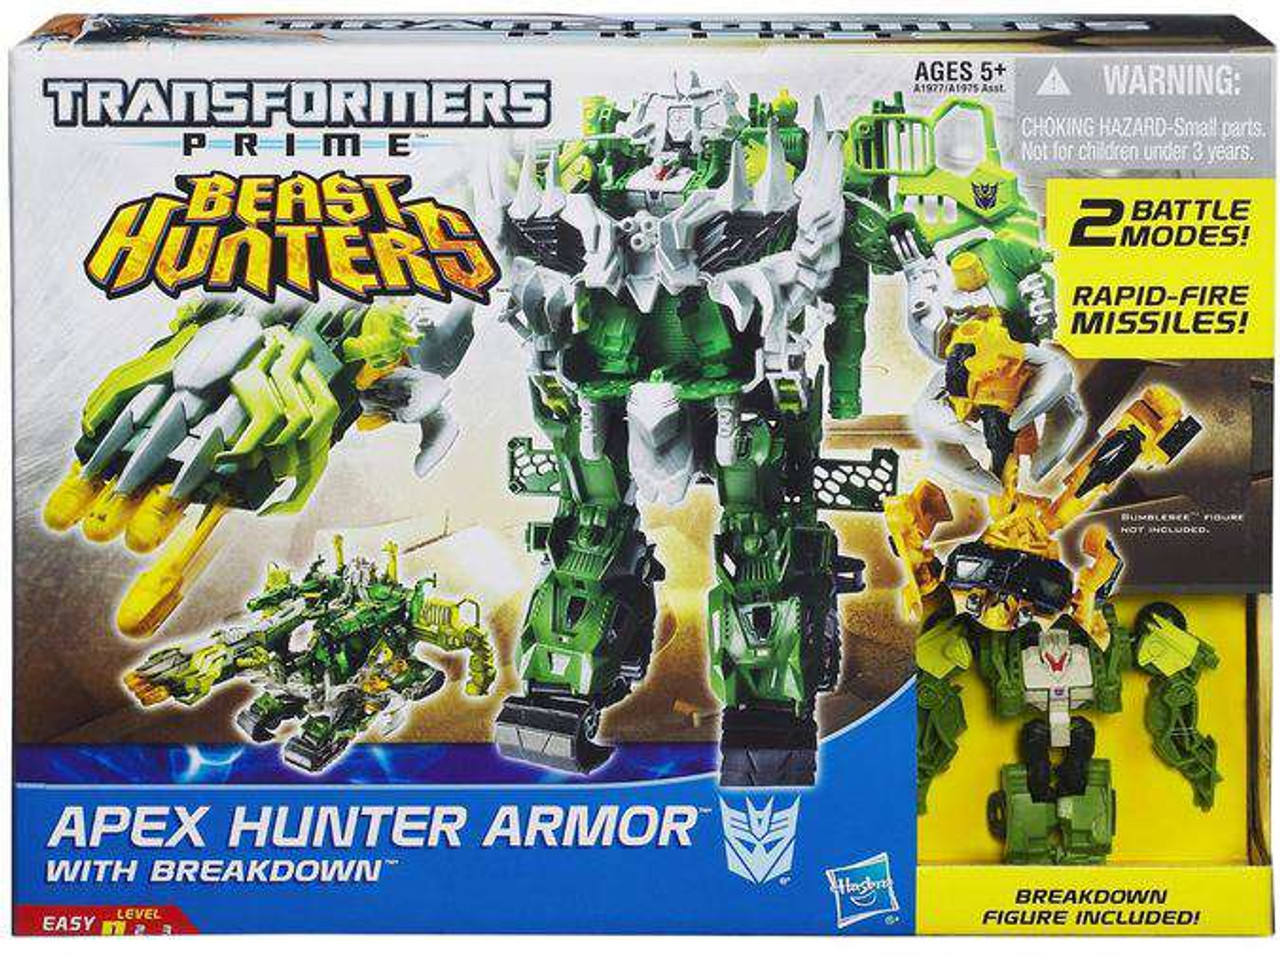 Transformers Prime Beast Hunters Apex Hunter Armor With Breakdown Action Figure Set